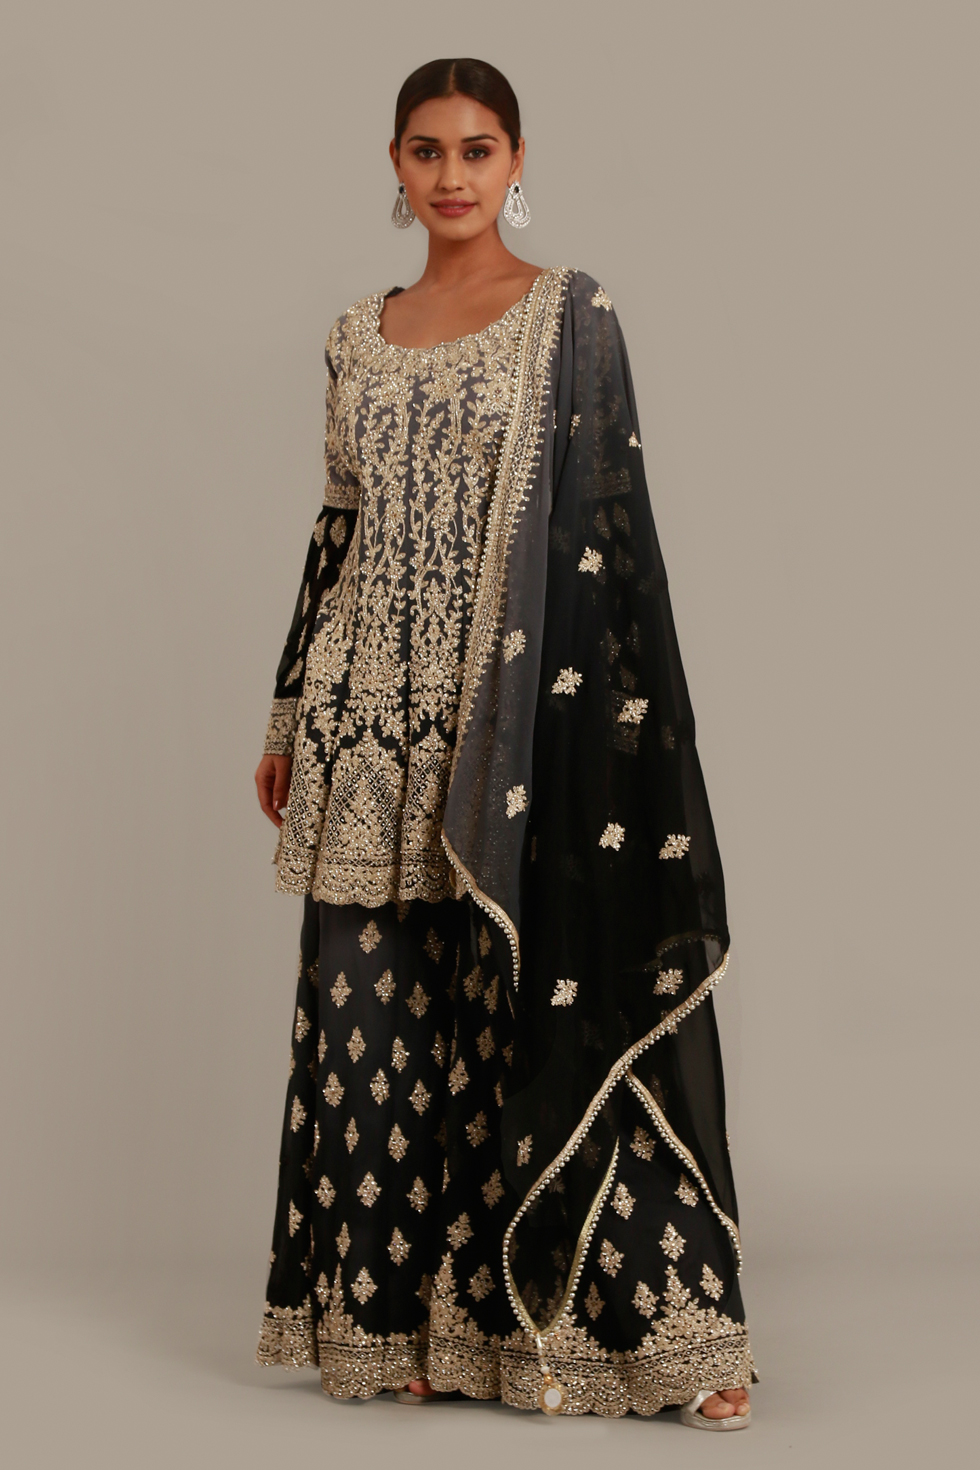 Raven black subtle ombré palazzo set with silver embroidery, peplum top and matching dupatta